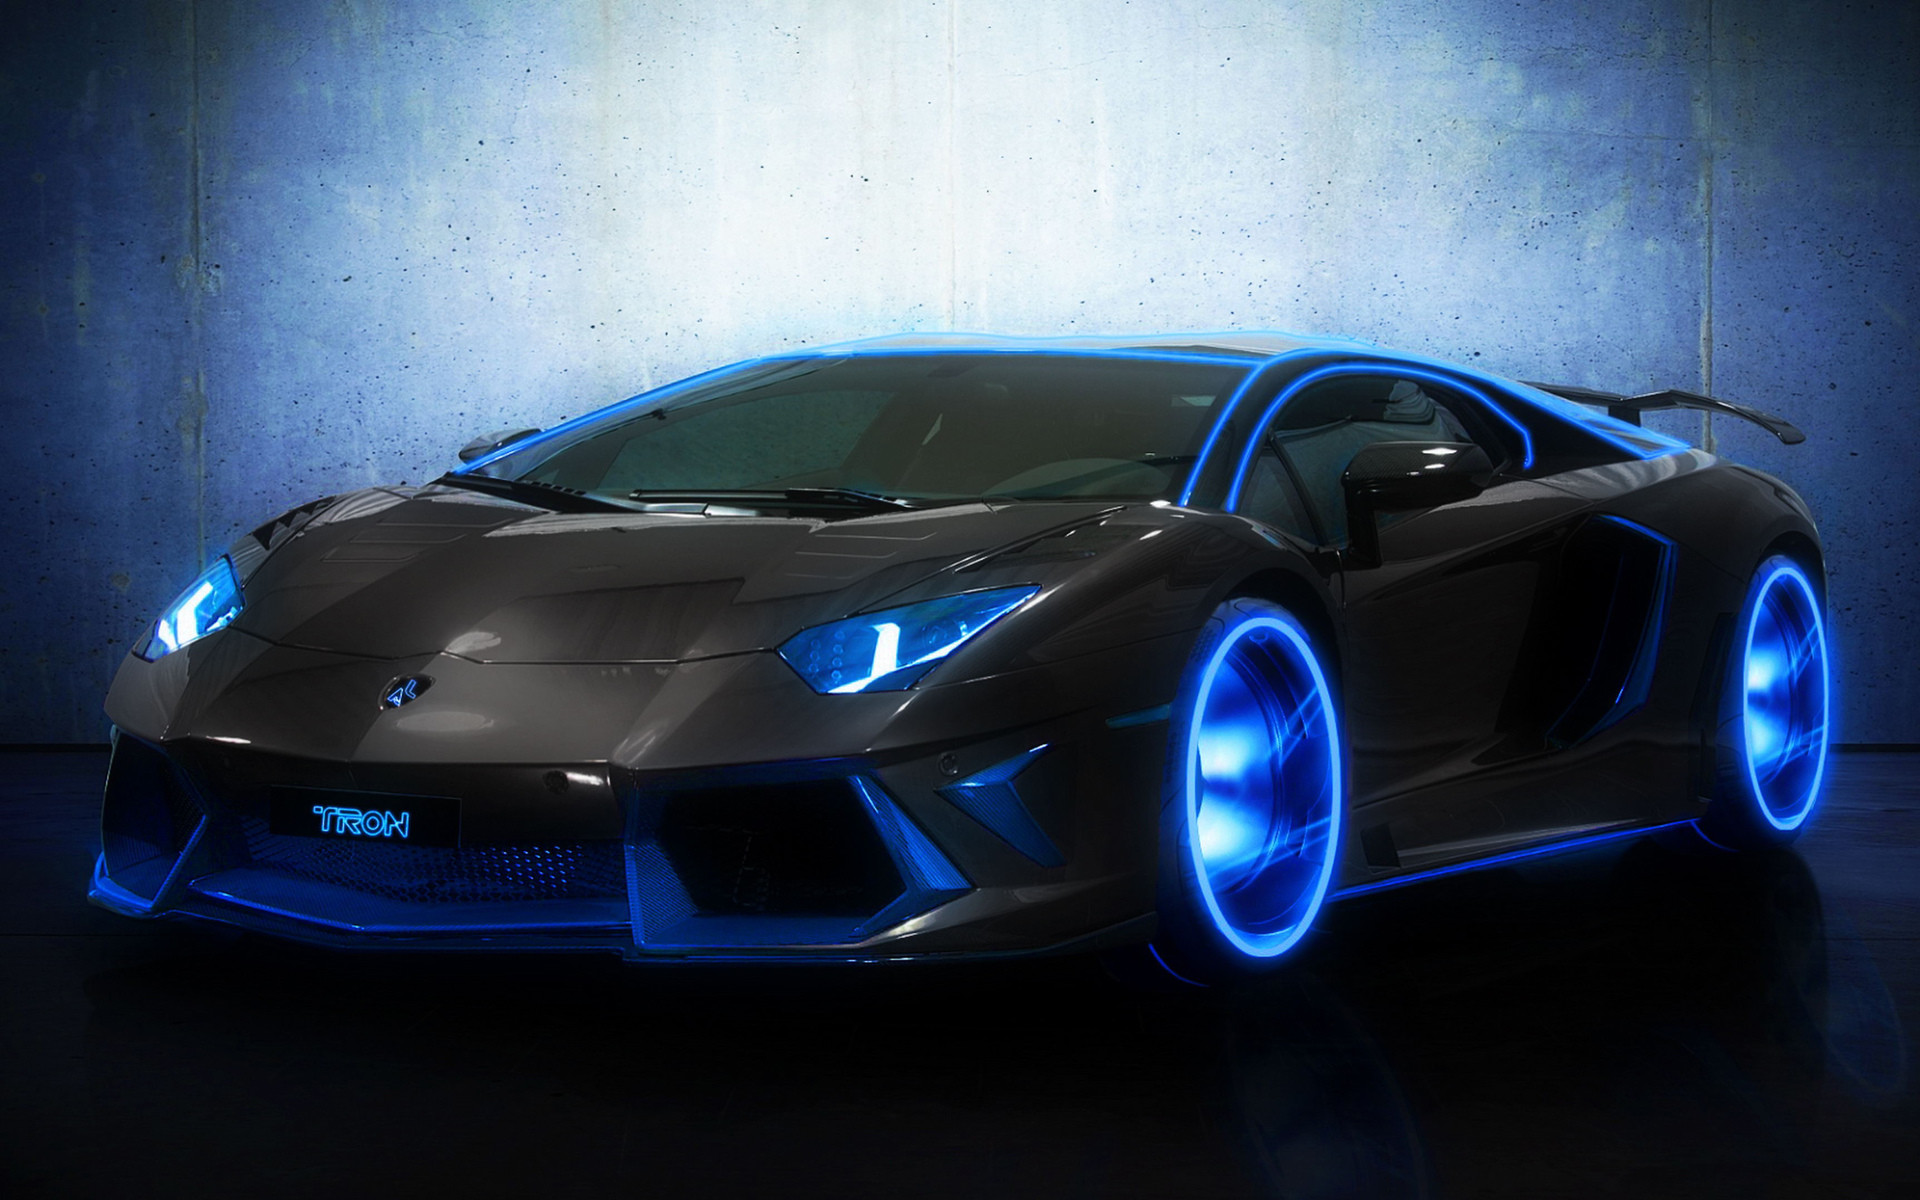 Res: 1920x1200, Blue and Black Lamborghini Aventador